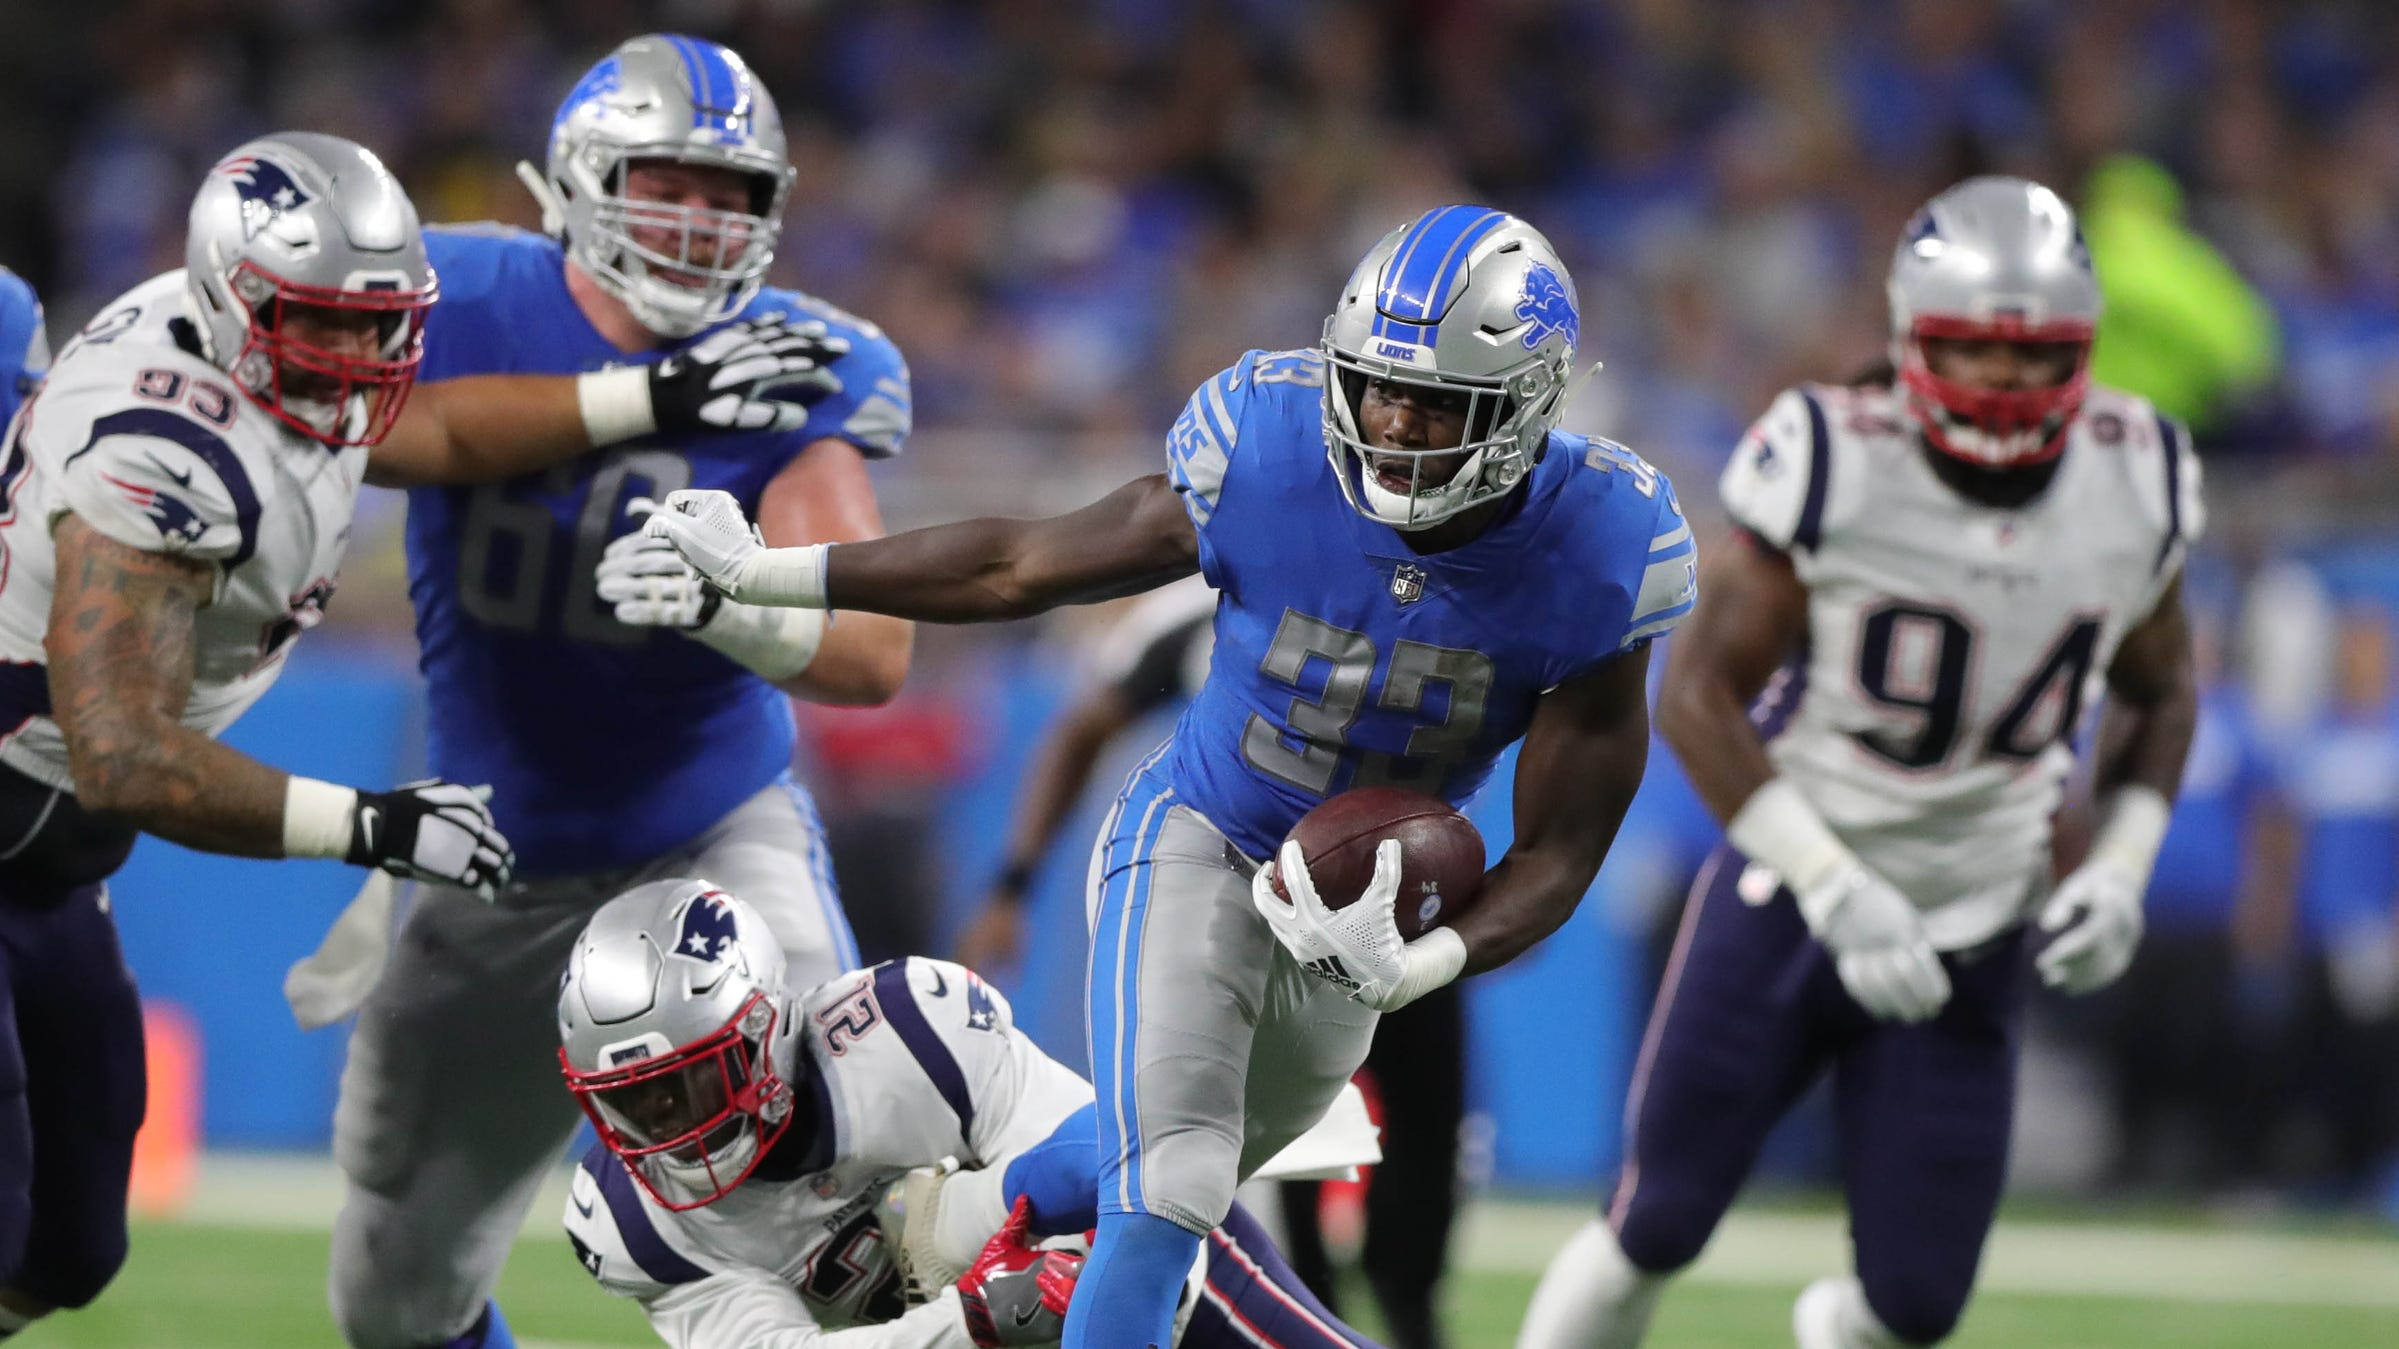 Kerryon Johnson becomes Detroit Lions' first 100-yard rusher since 2013